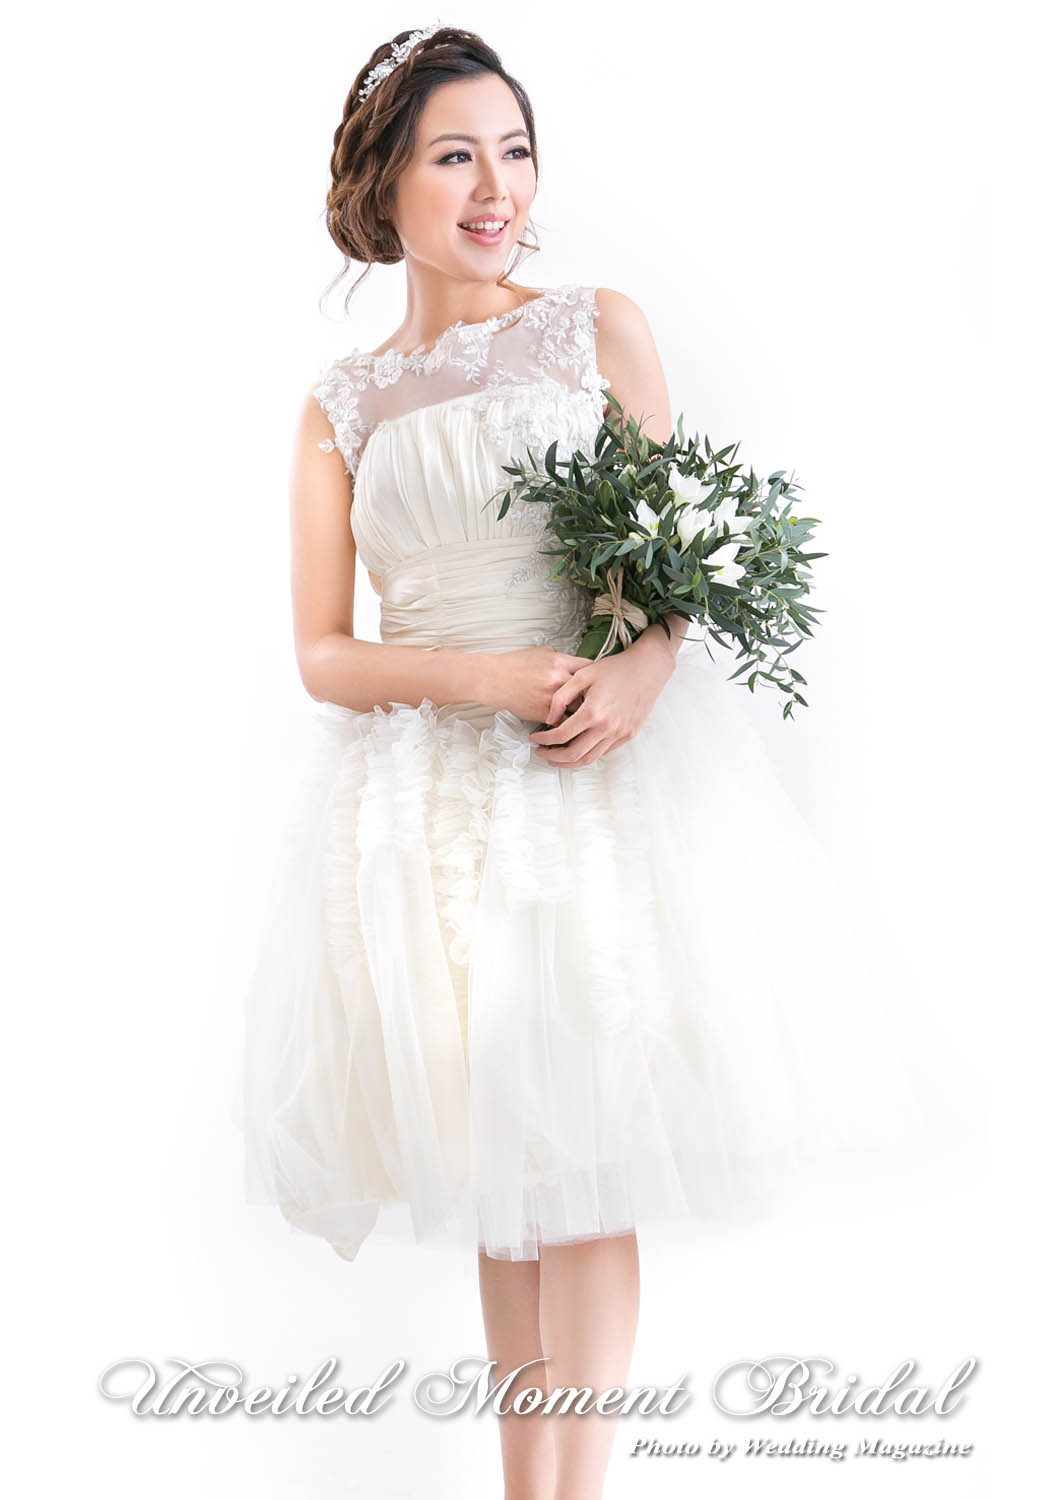 短裙款無袖透視花邊輕婚紗 Sleeveless, organza short skirt wedding dress